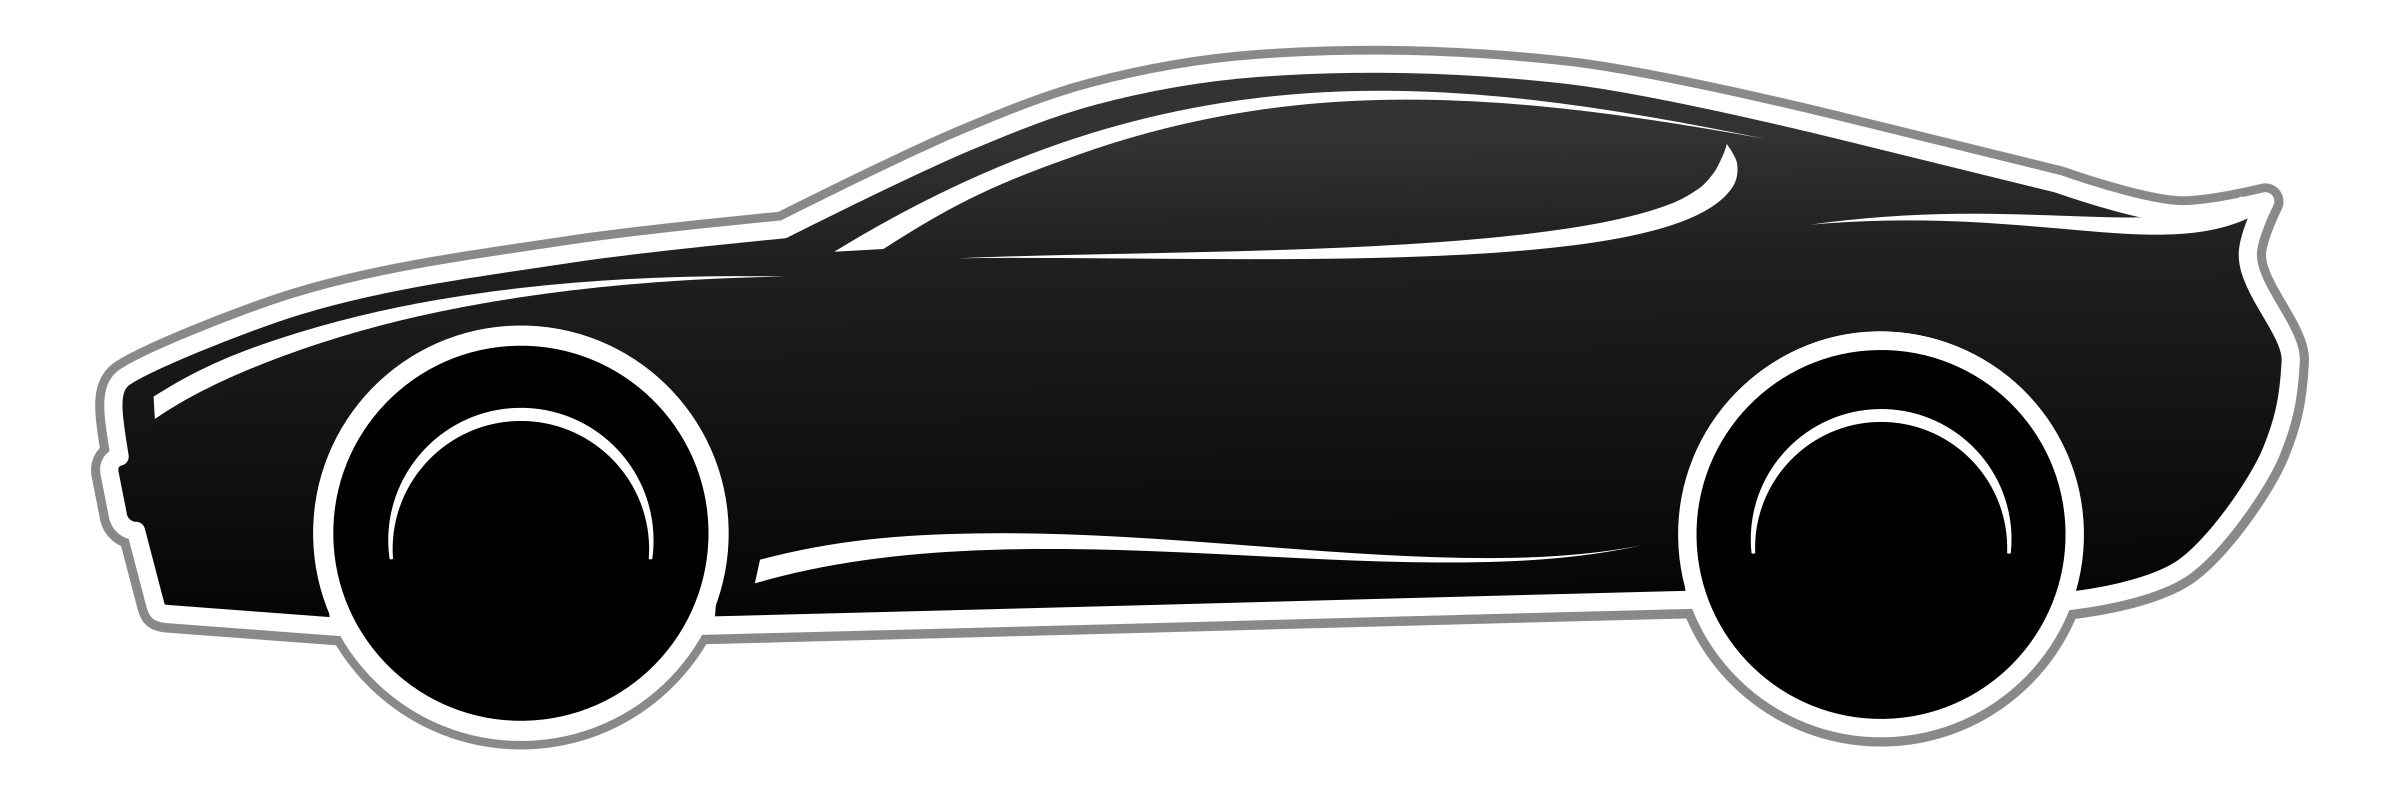 fast car png black and white transparent fast car black and white rh pluspng com car clipart black and white free car clipart black and white top view